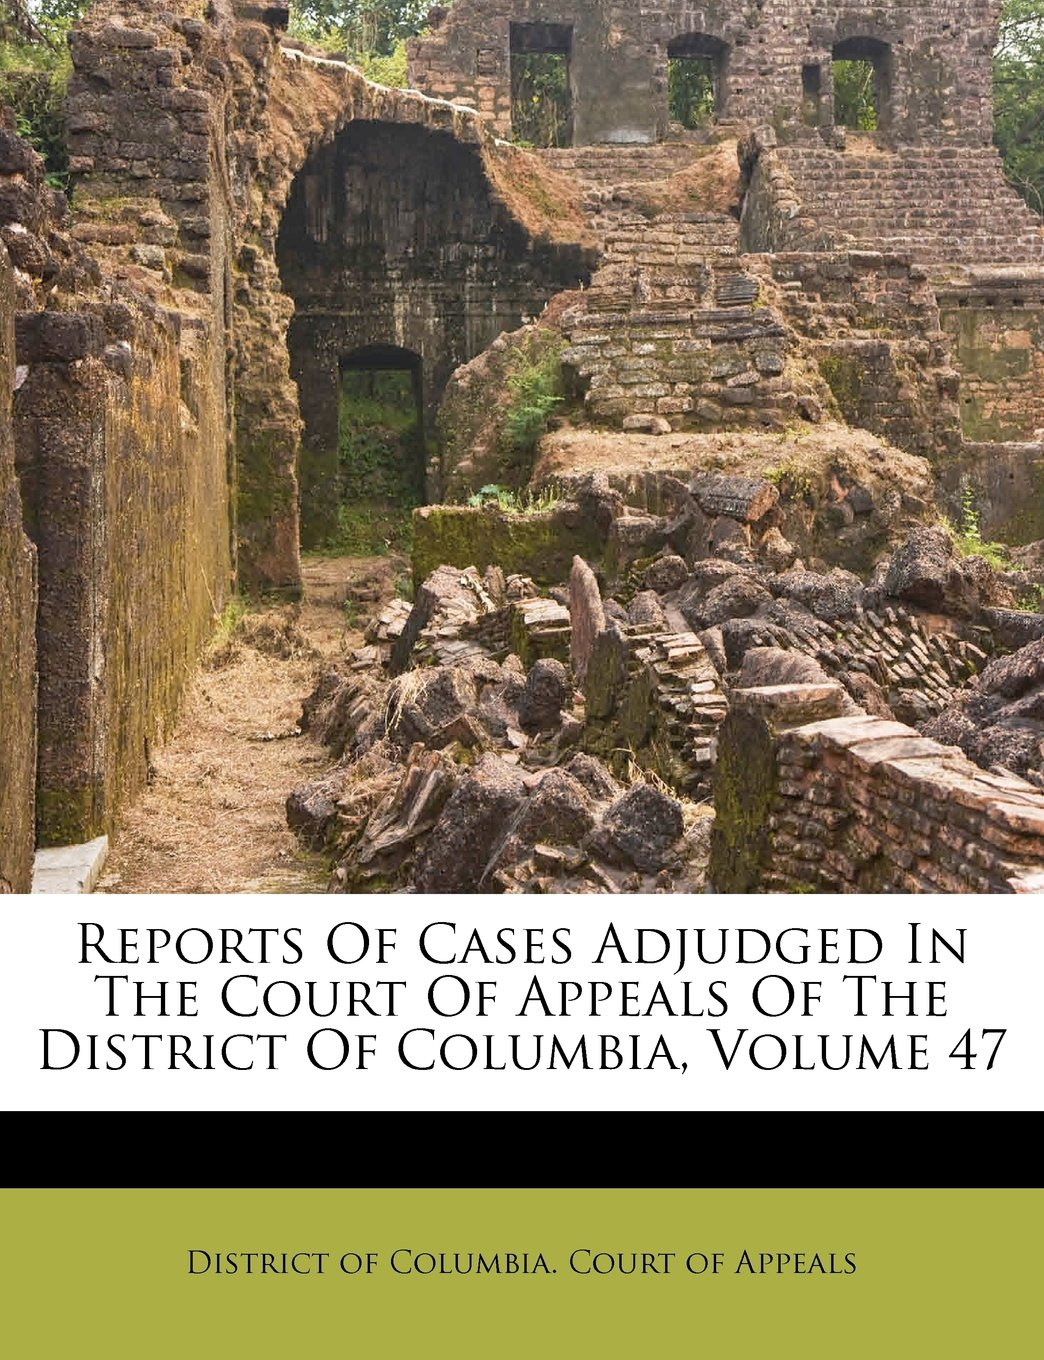 Download Reports Of Cases Adjudged In The Court Of Appeals Of The District Of Columbia, Volume 47 PDF